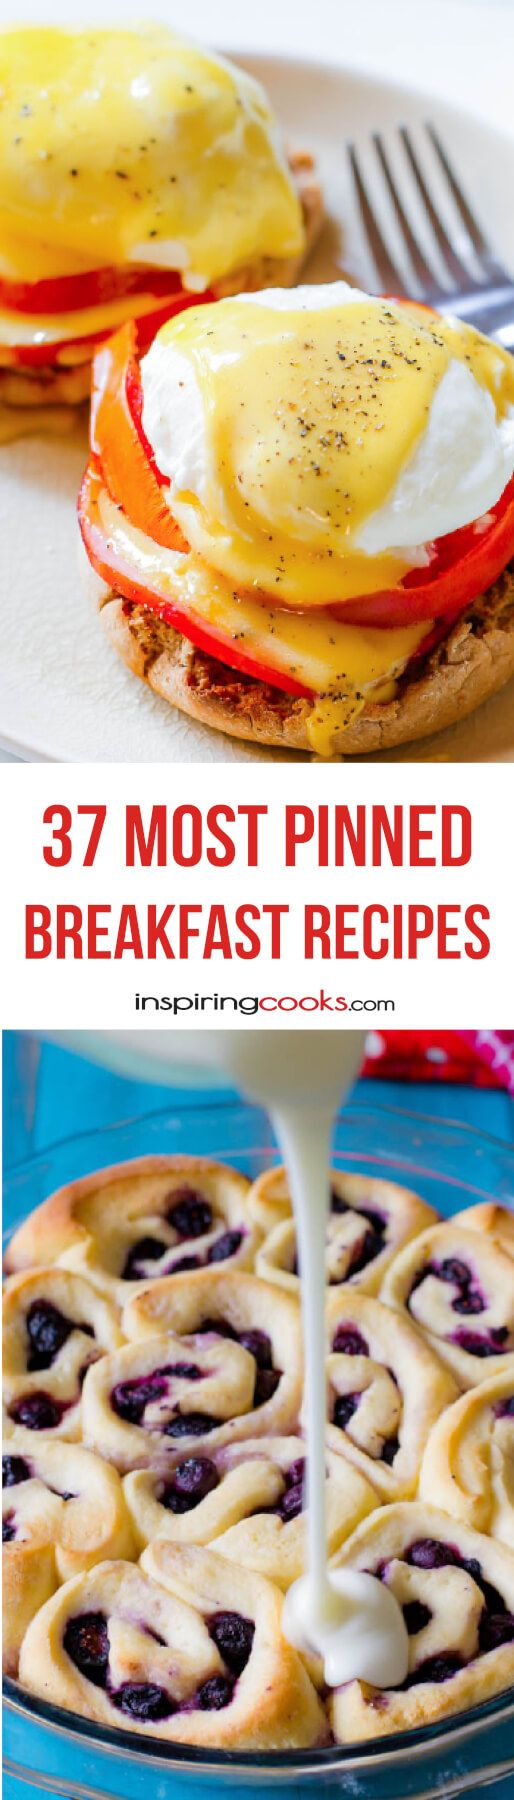 The 37 Most Pinned Breakfast Recipes – Best Recipes on Pinterest